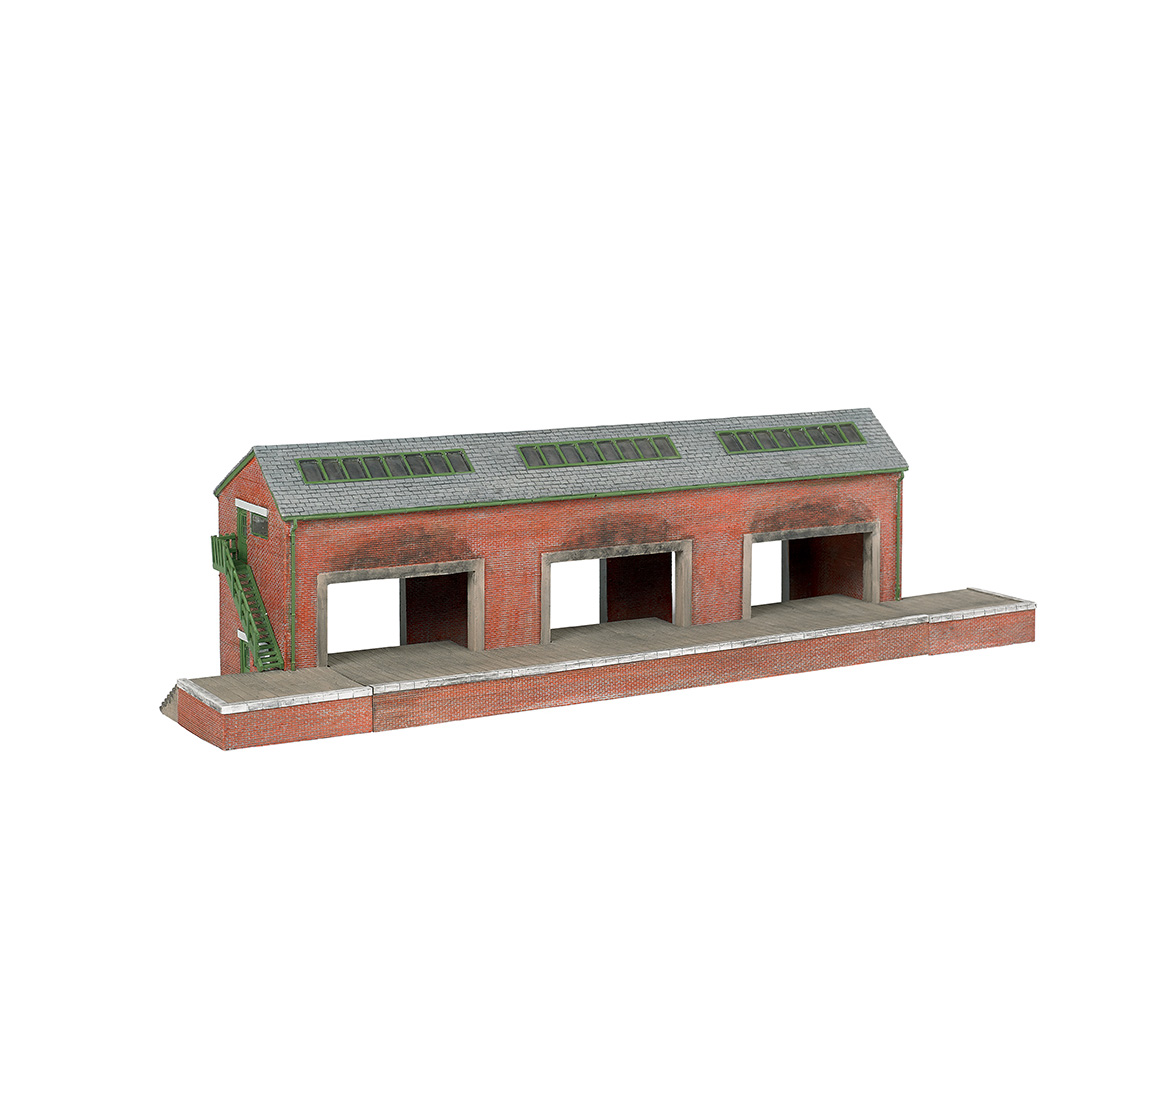 bachmann_thomasandfriends_resin_building_brendam_warehouse